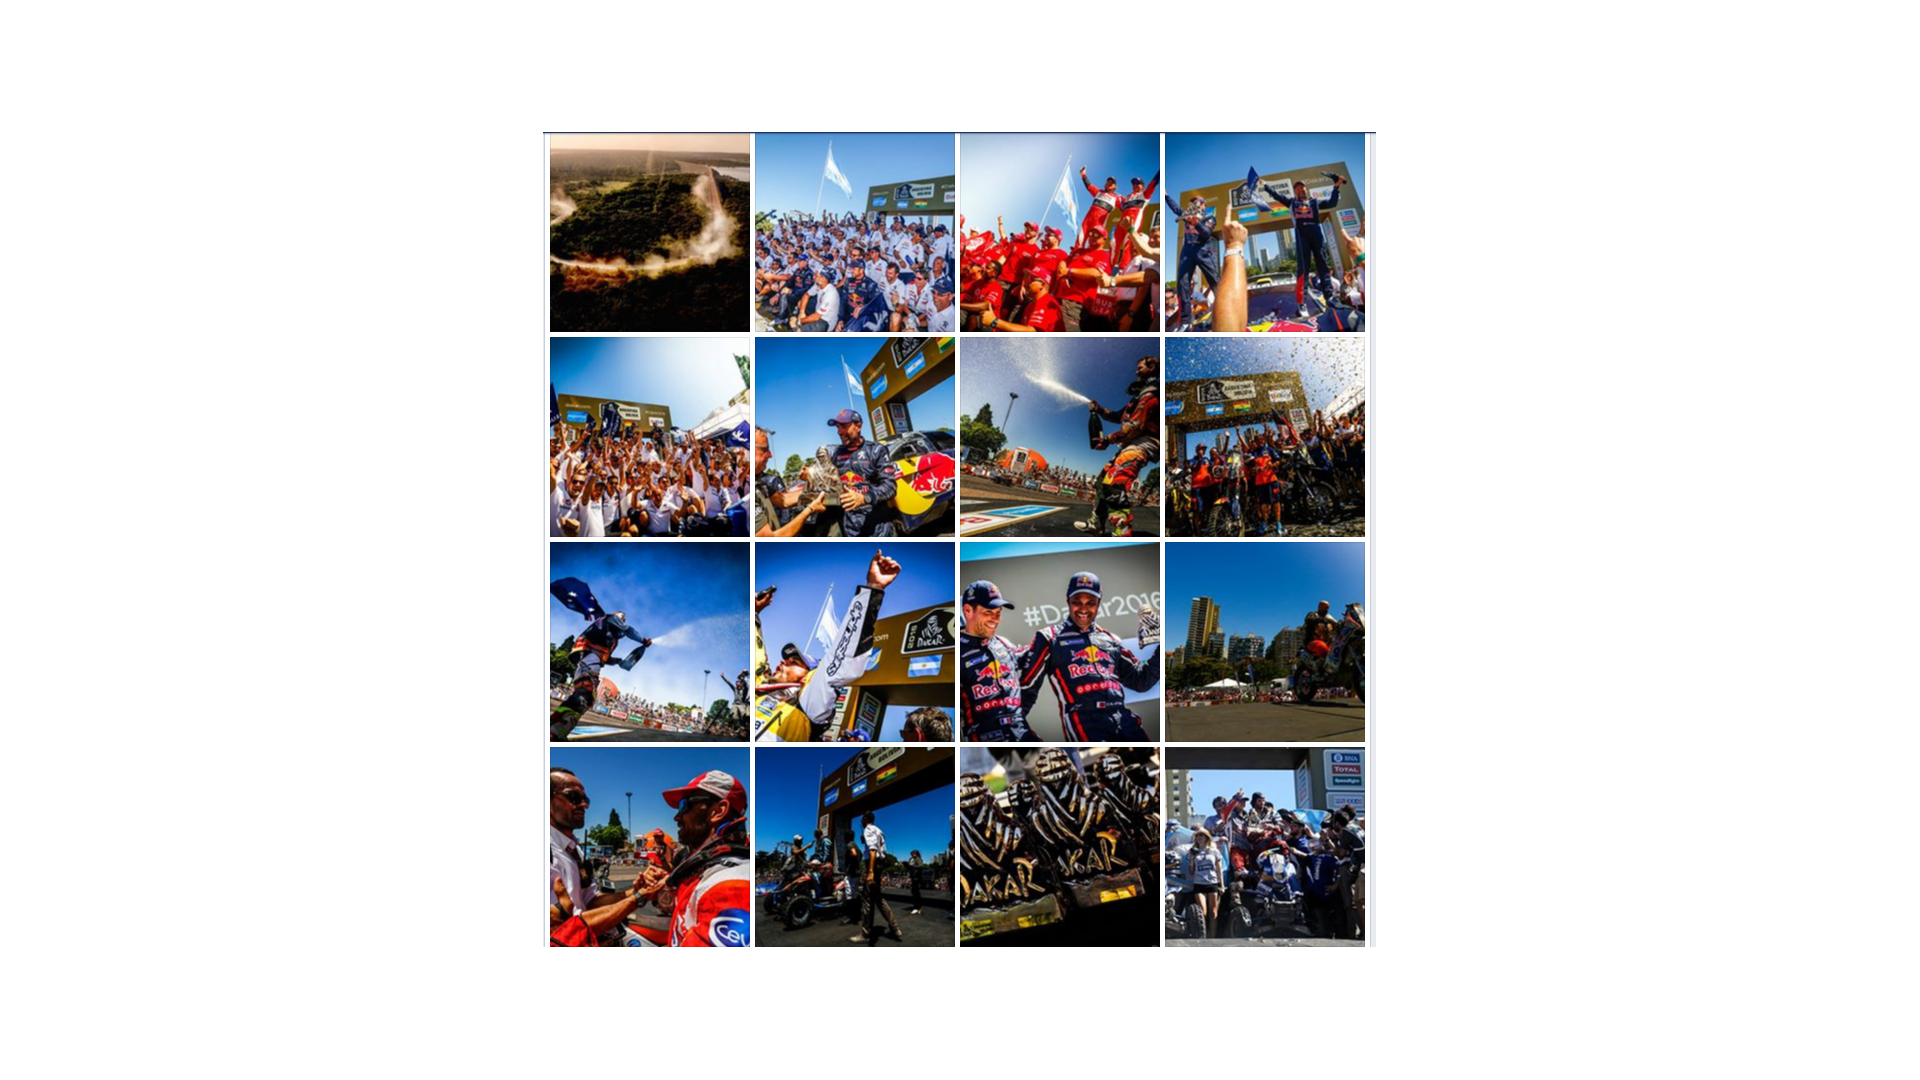 finish - Dakar 2016 - photos